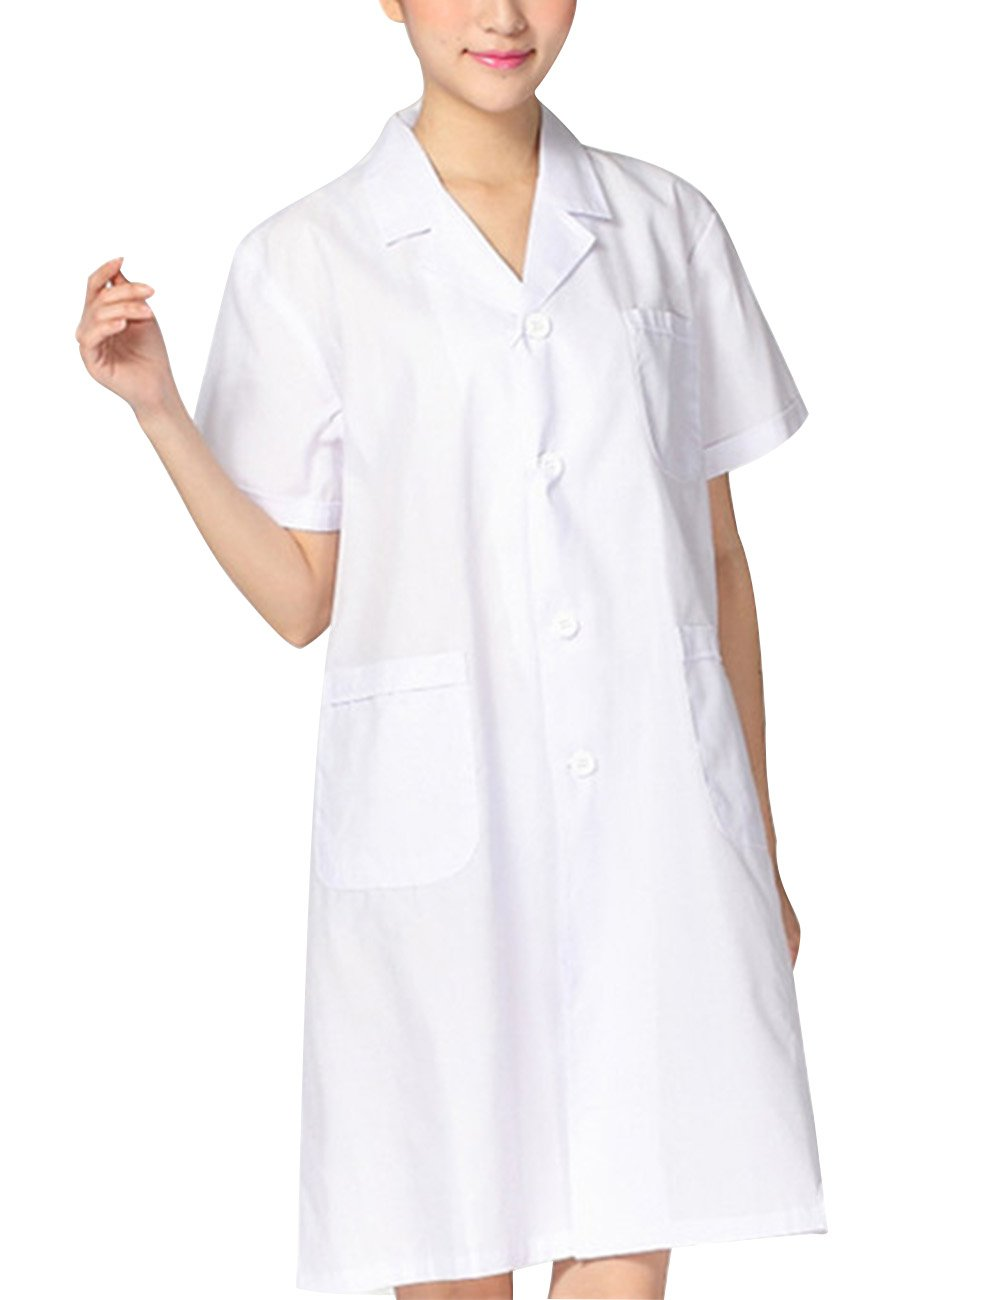 THEE White Short Sleeve Health Nurse Medical Laboratory Lab Coat Unisex